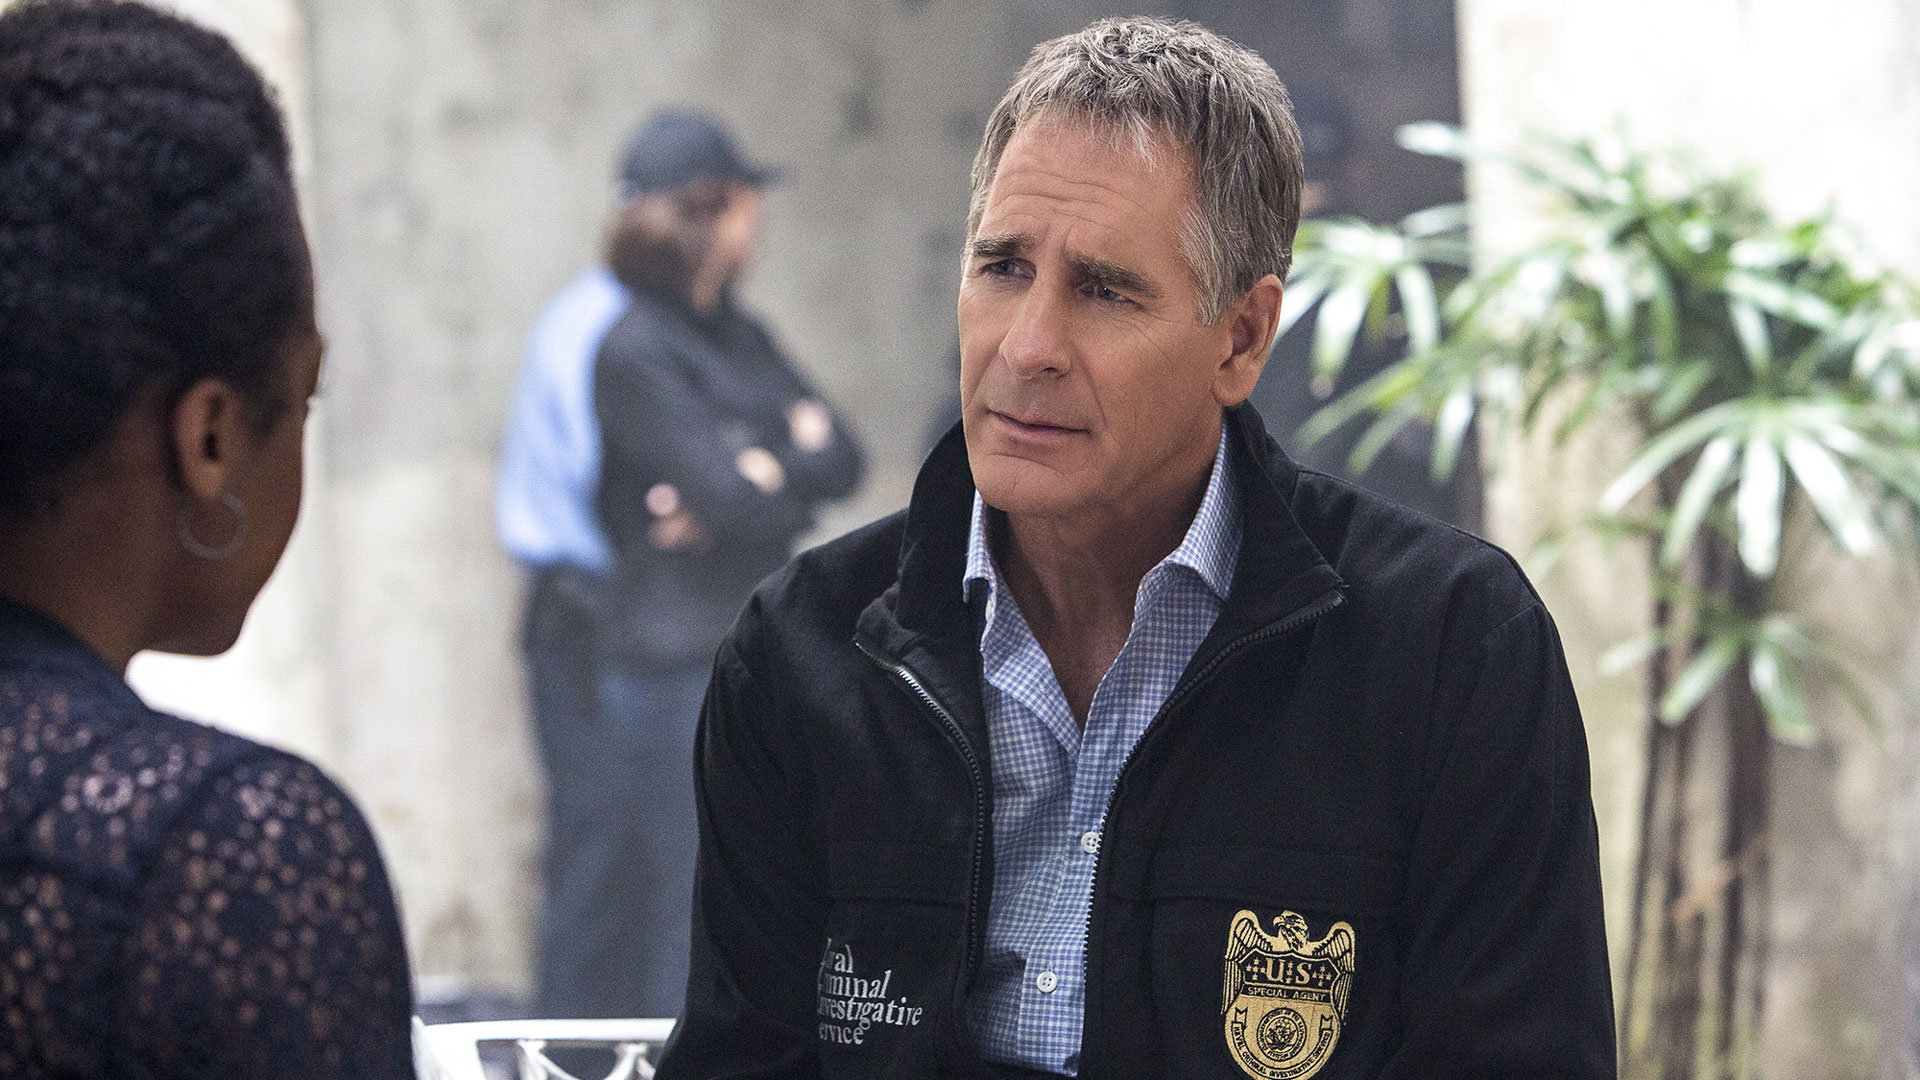 NCIS: New Orleans deals with a detailed investigation.